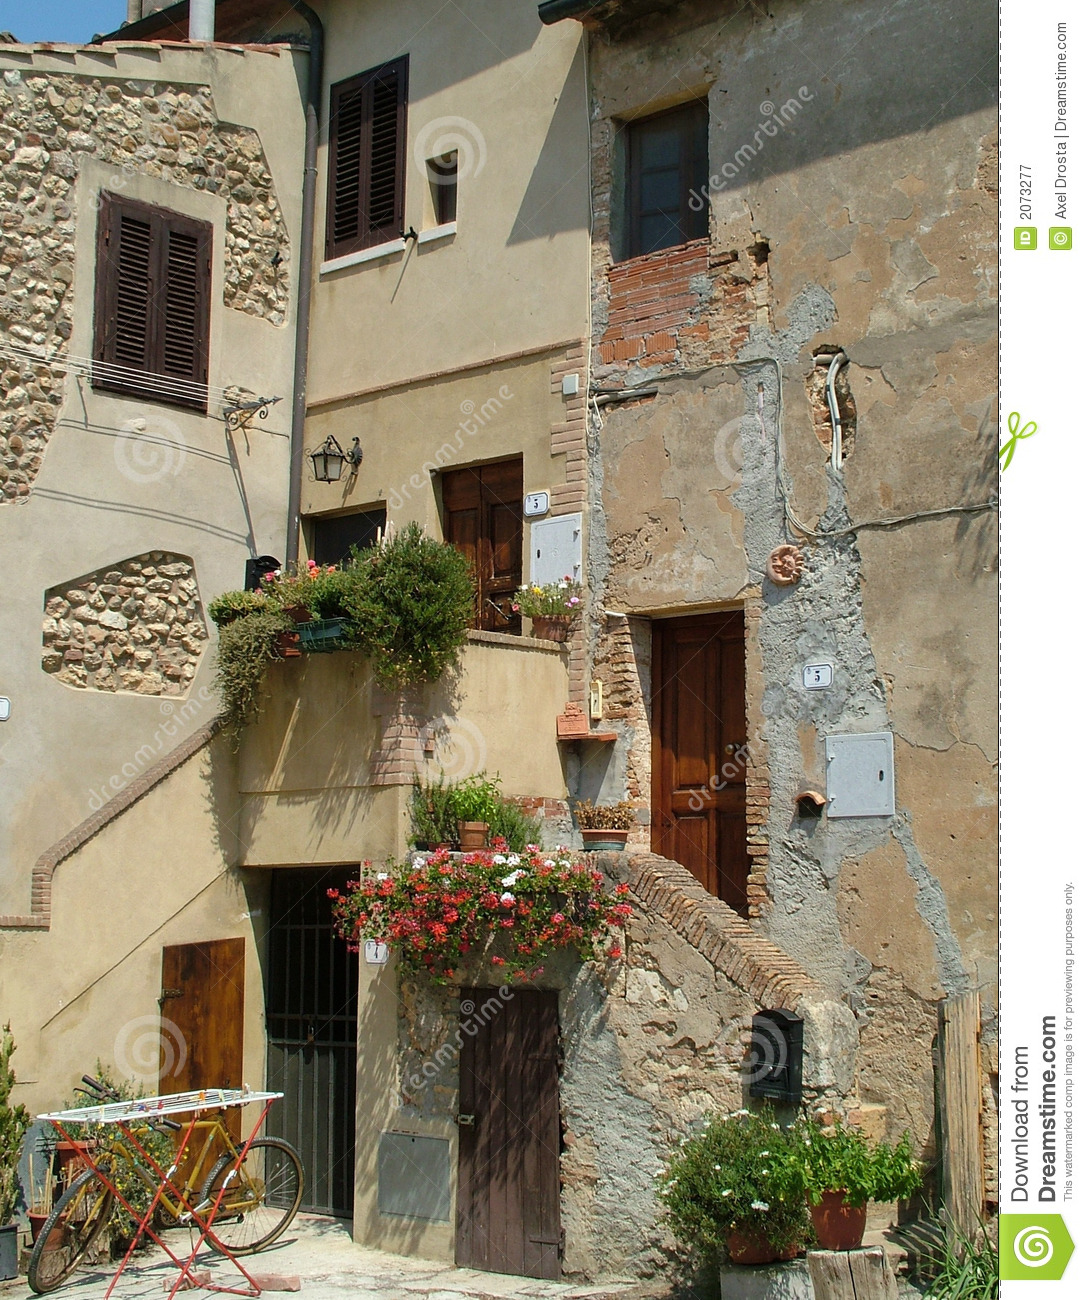 Houses in tuscany royalty free stock photography image for Houses in tuscany